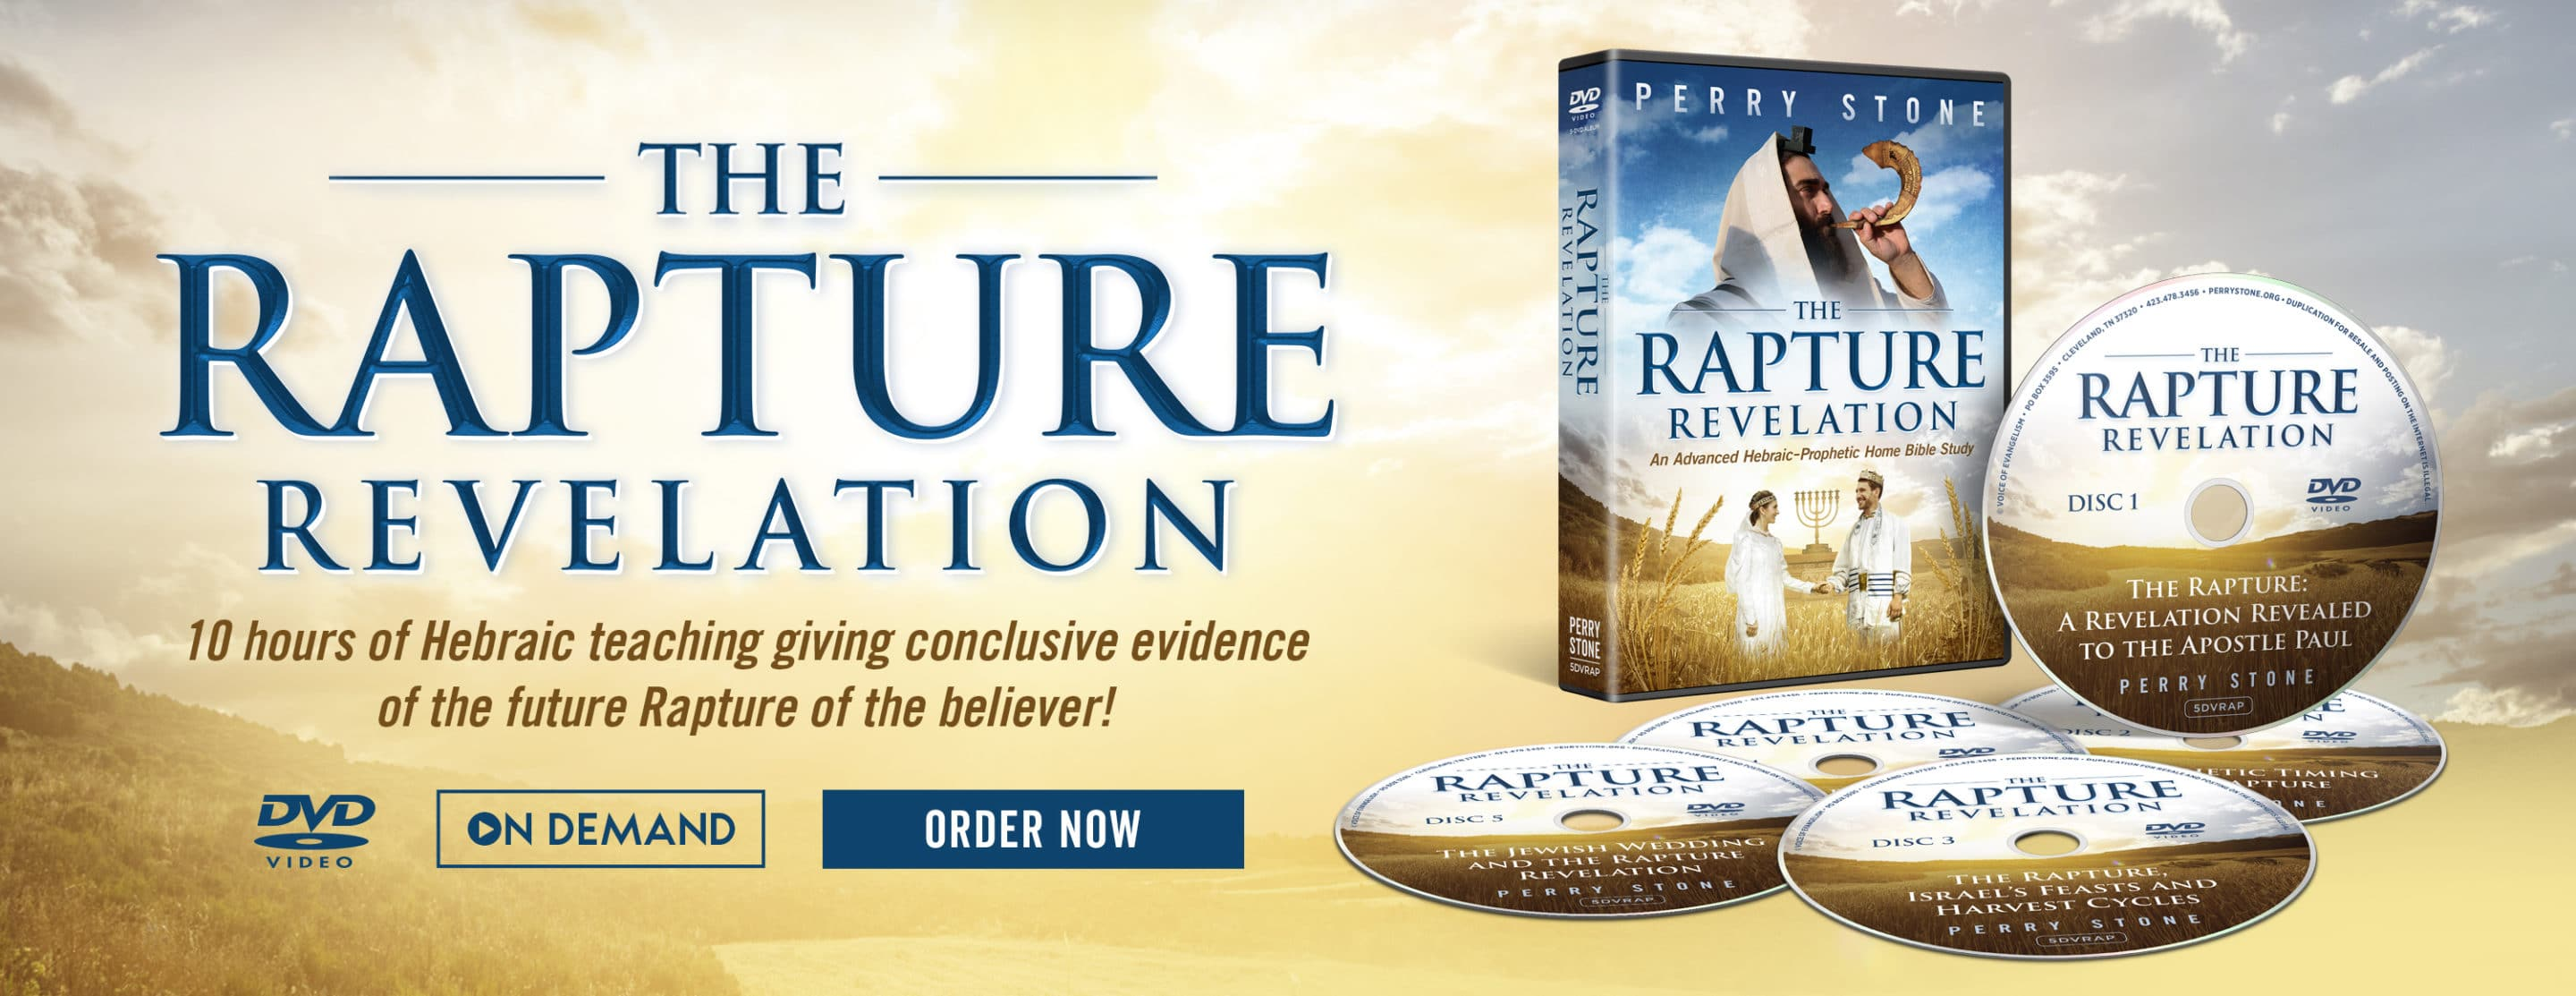 The_Rapture_Revelation_Website_Banner